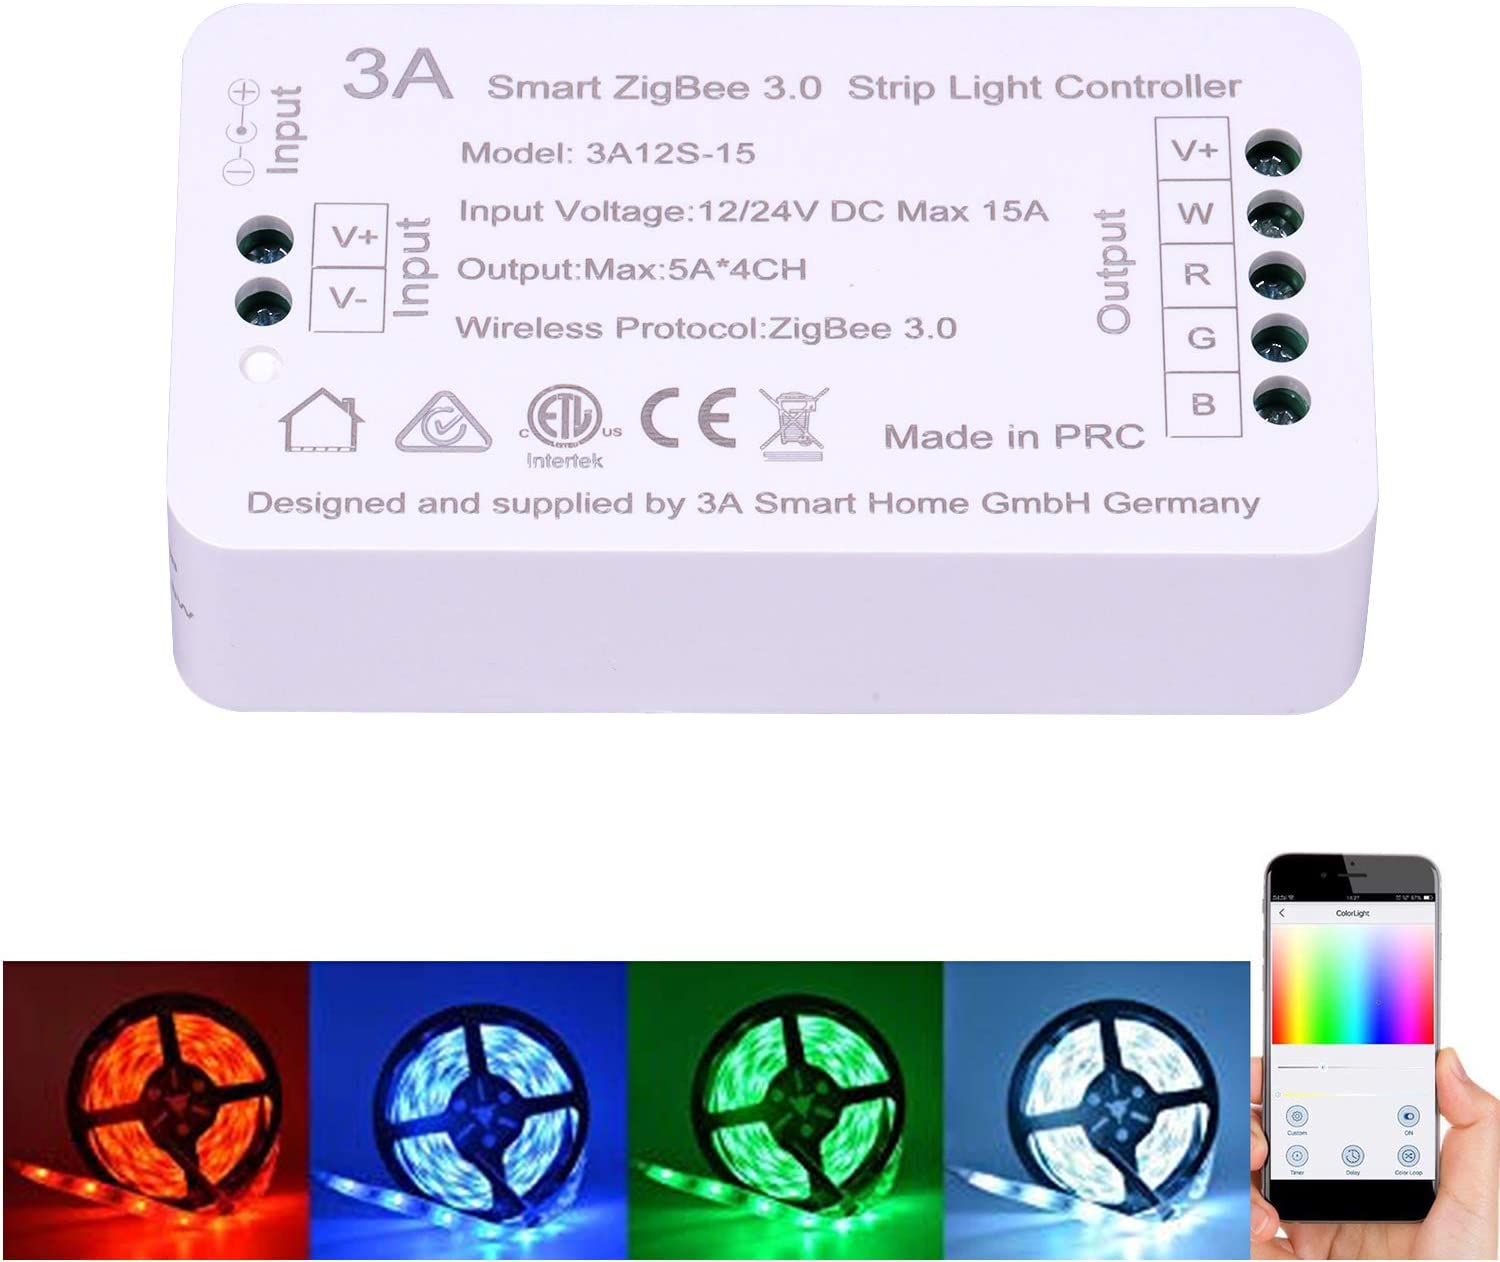 12 / 24V DC Smart ZigBee RGBW RGB Strip Light Controller Switch for Normal Strip Light Automation and Alexa Control